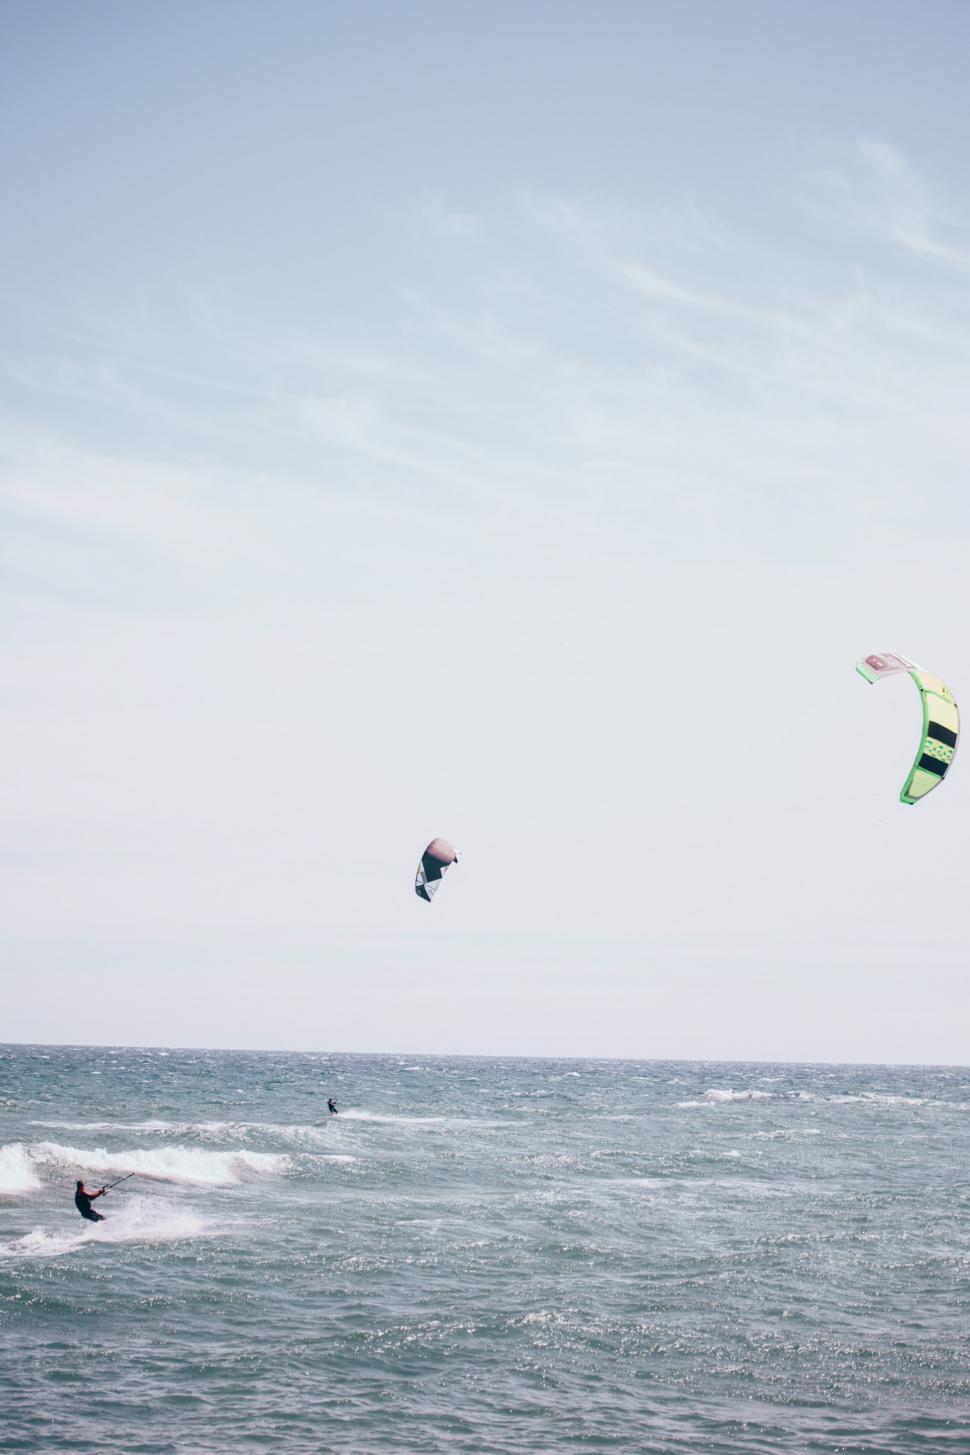 Download Free Stock Photo of Surfboarding with surfing kite